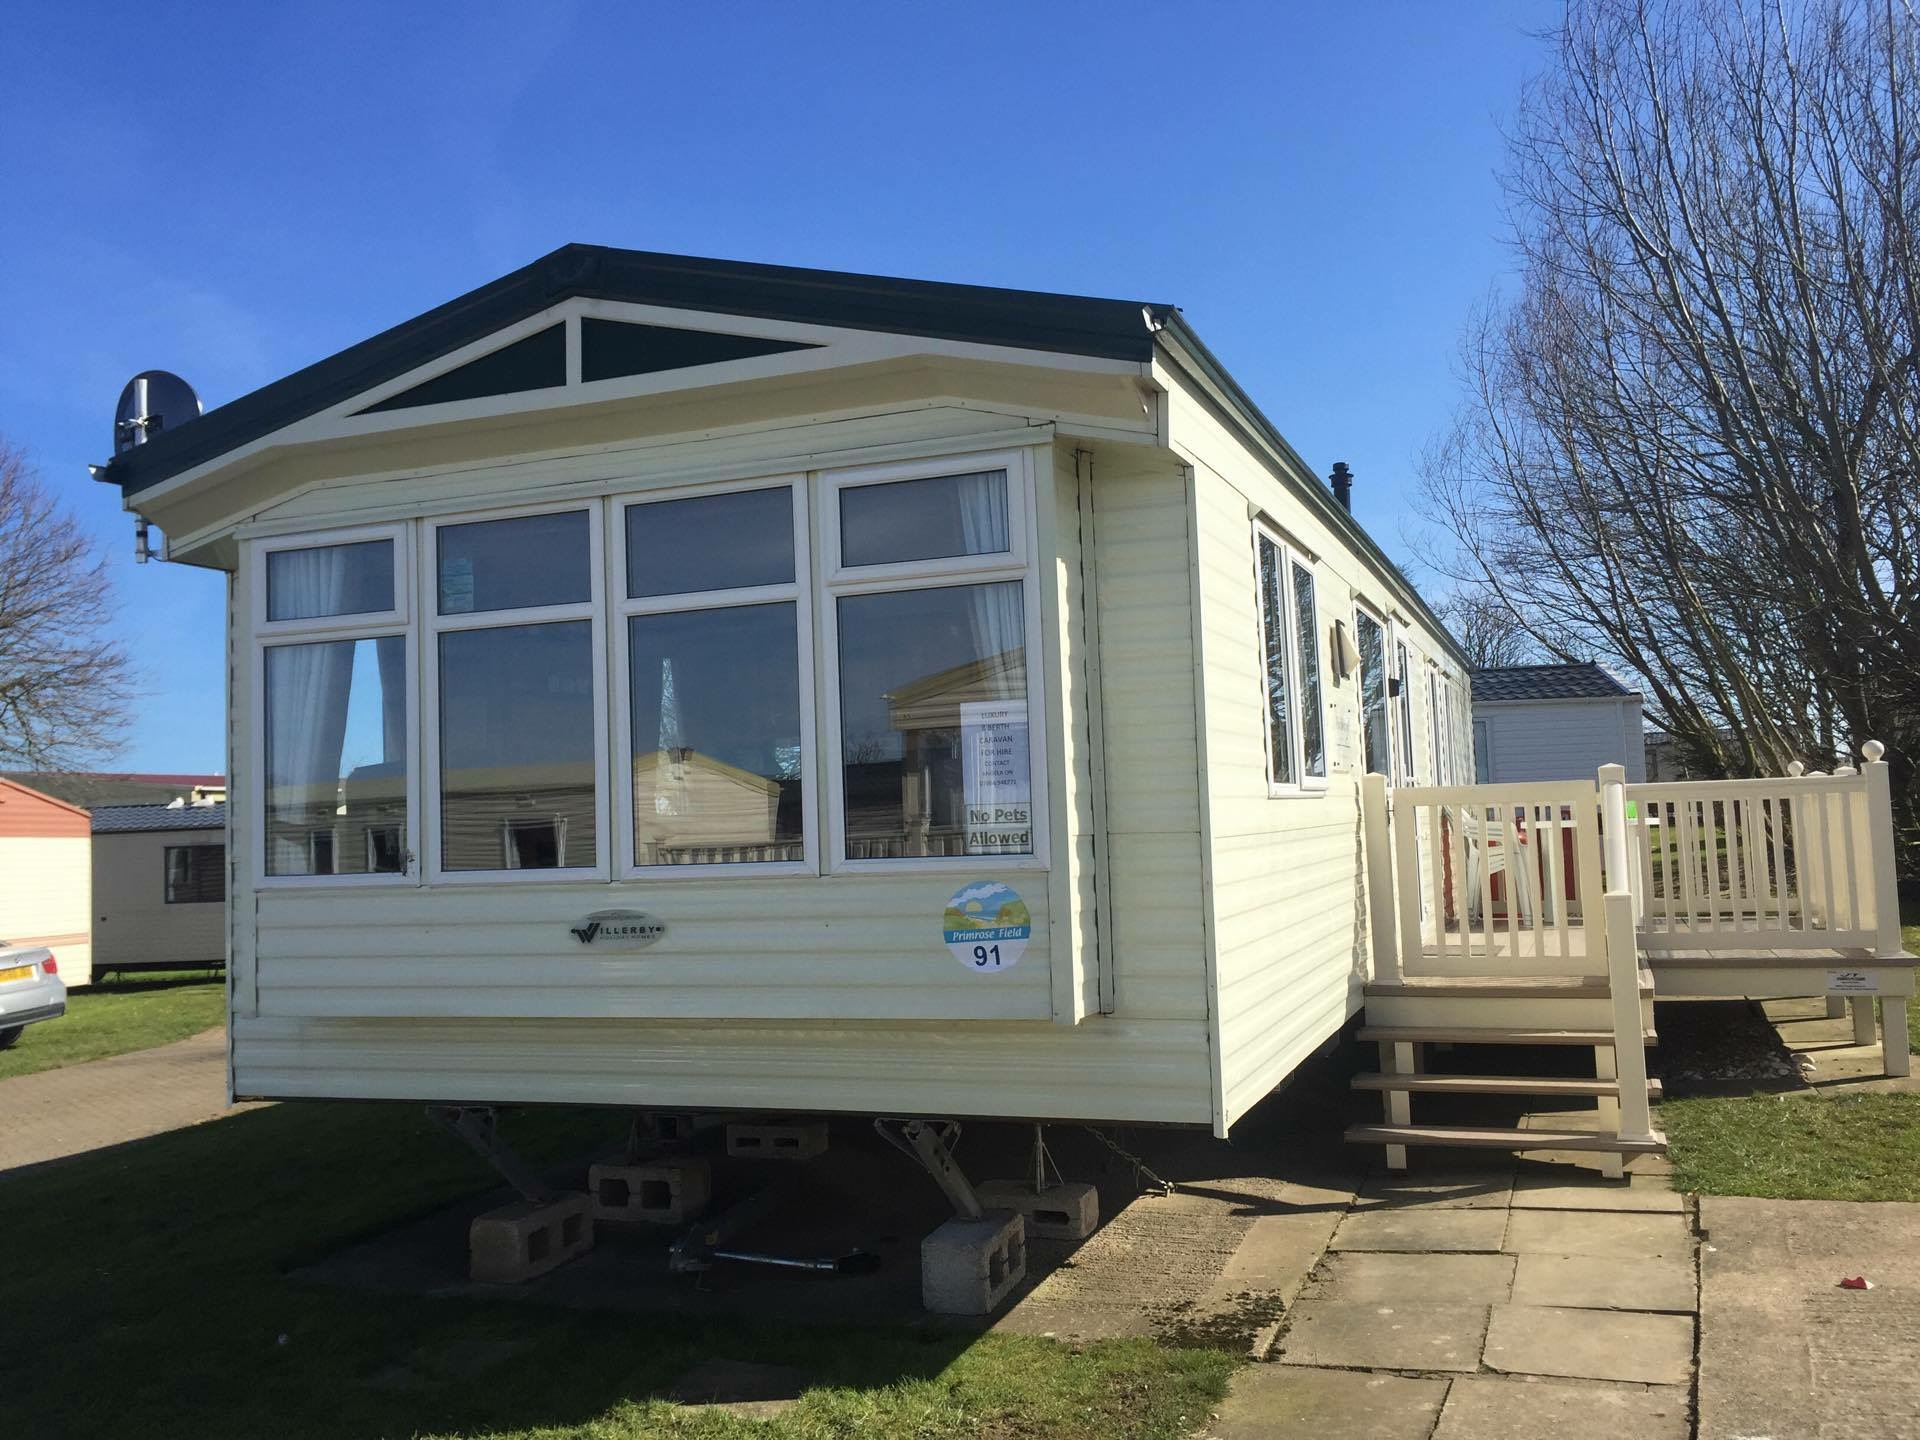 *044*Primrose Valley Holiday Park, Filey, East Yorkshire